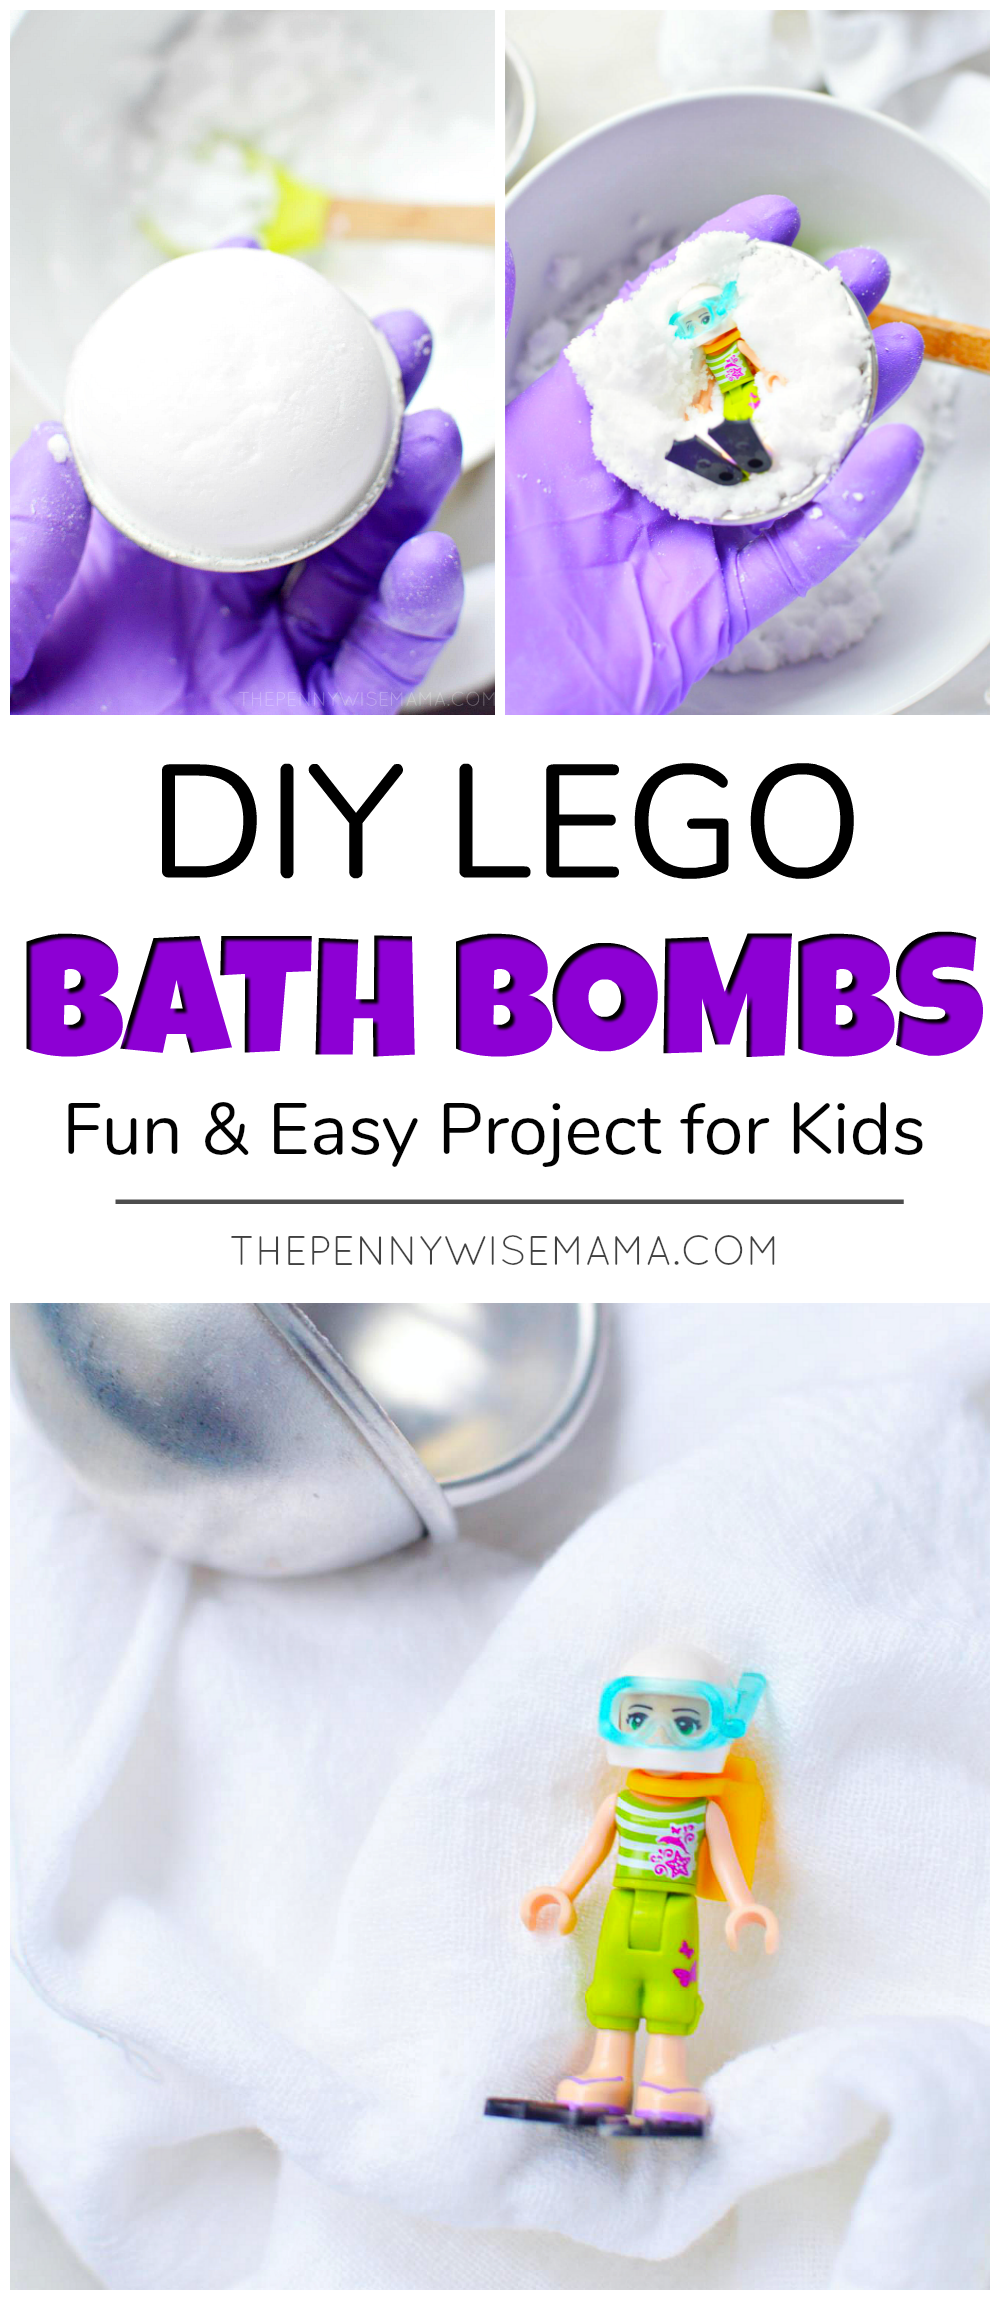 DIY Lego Bath Bombs - A Fun and Easy Project for Kids! Perfect for bath time or as a sensory experience. #lego #legos #bathbomb #bathbombs #bathfizzie